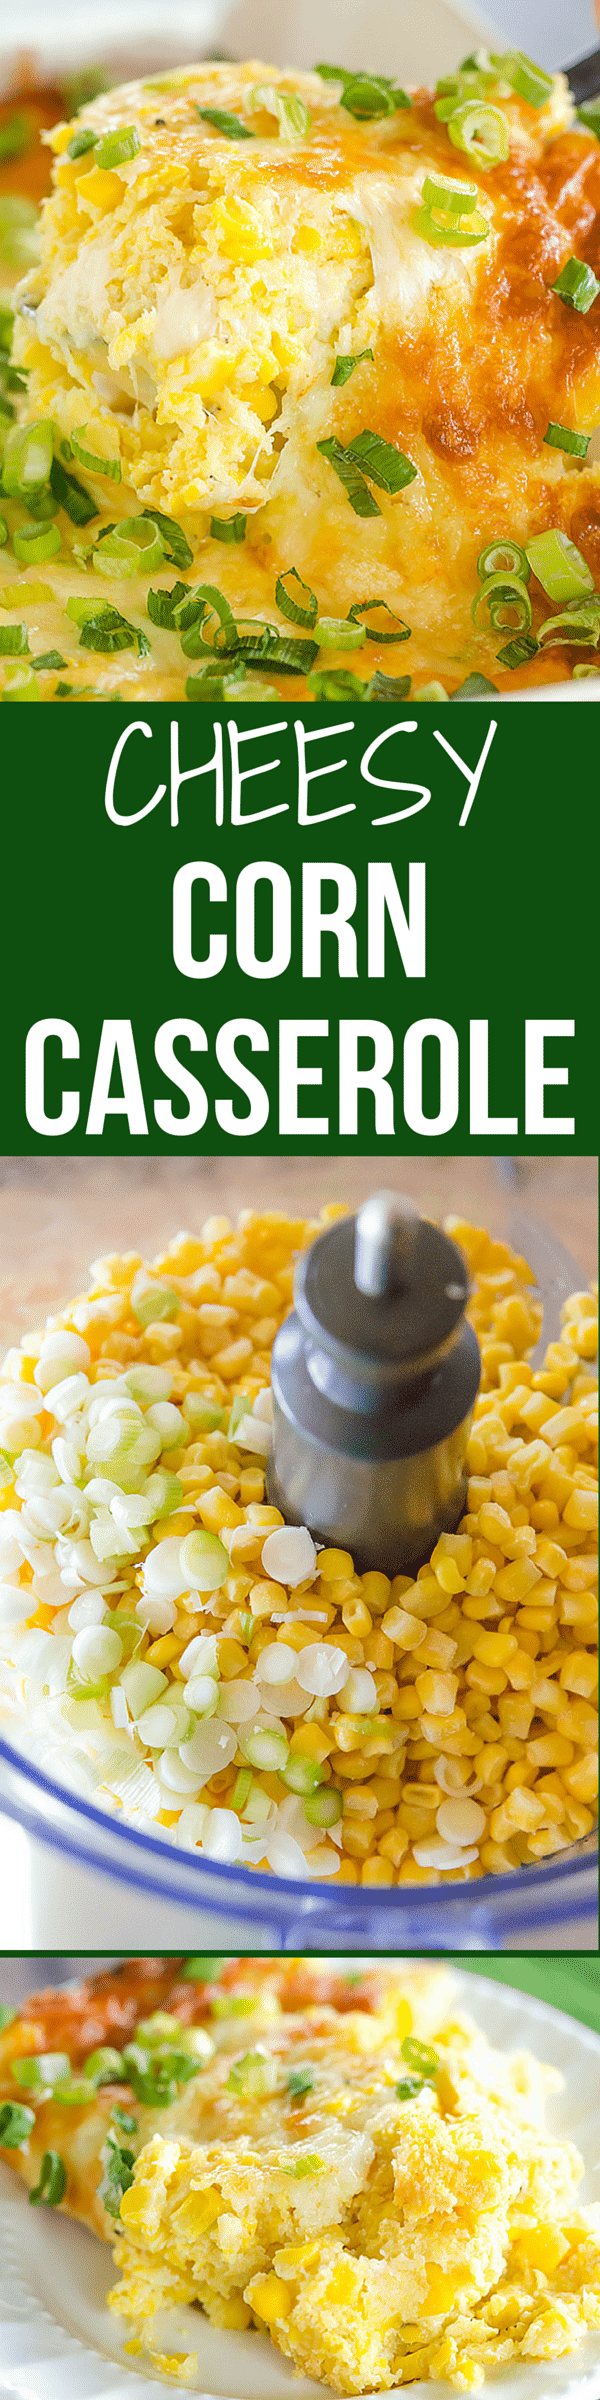 best cheesy corn casserole yet - tons of corn flavor and super cheesy ...